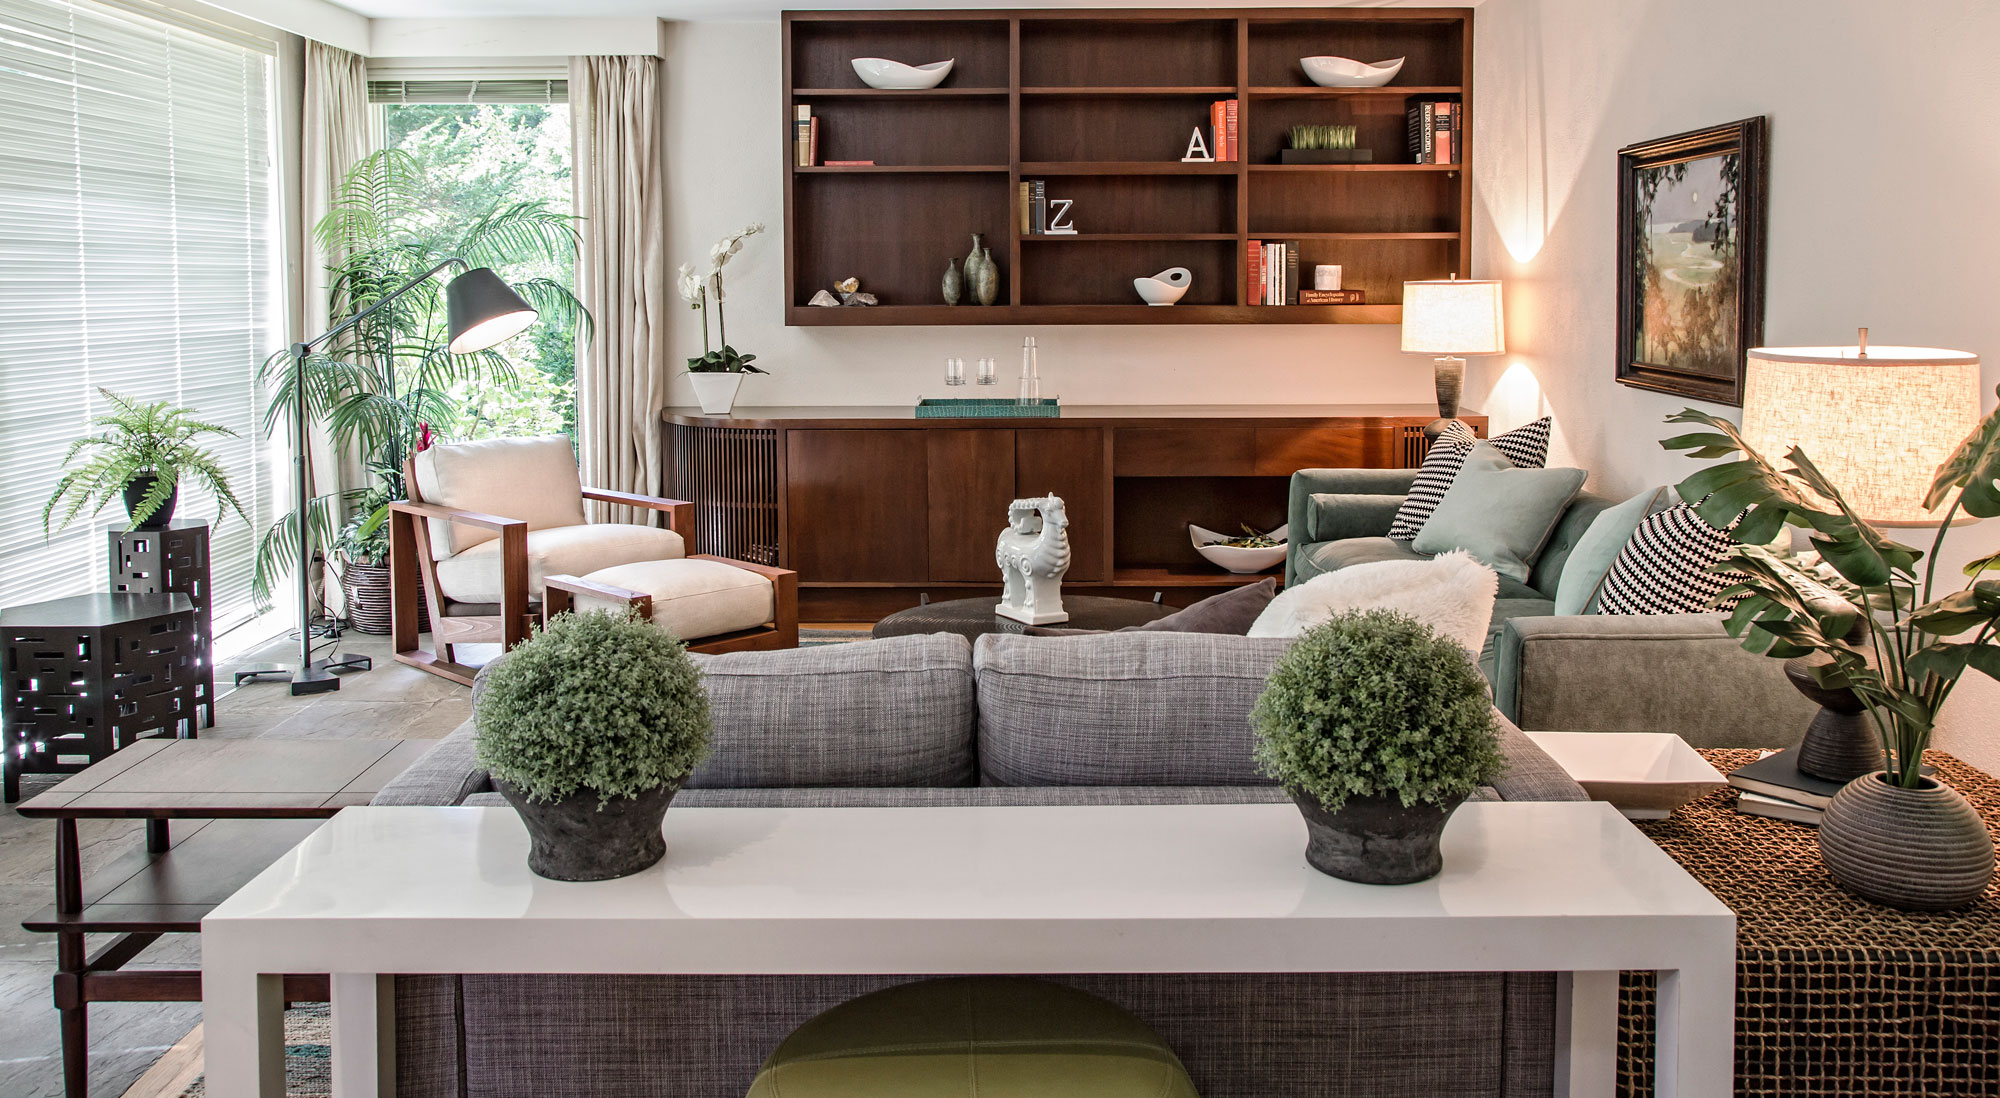 Living Room Sets Boston Ma heidi pribell • interior designer boston, ma • living room - table